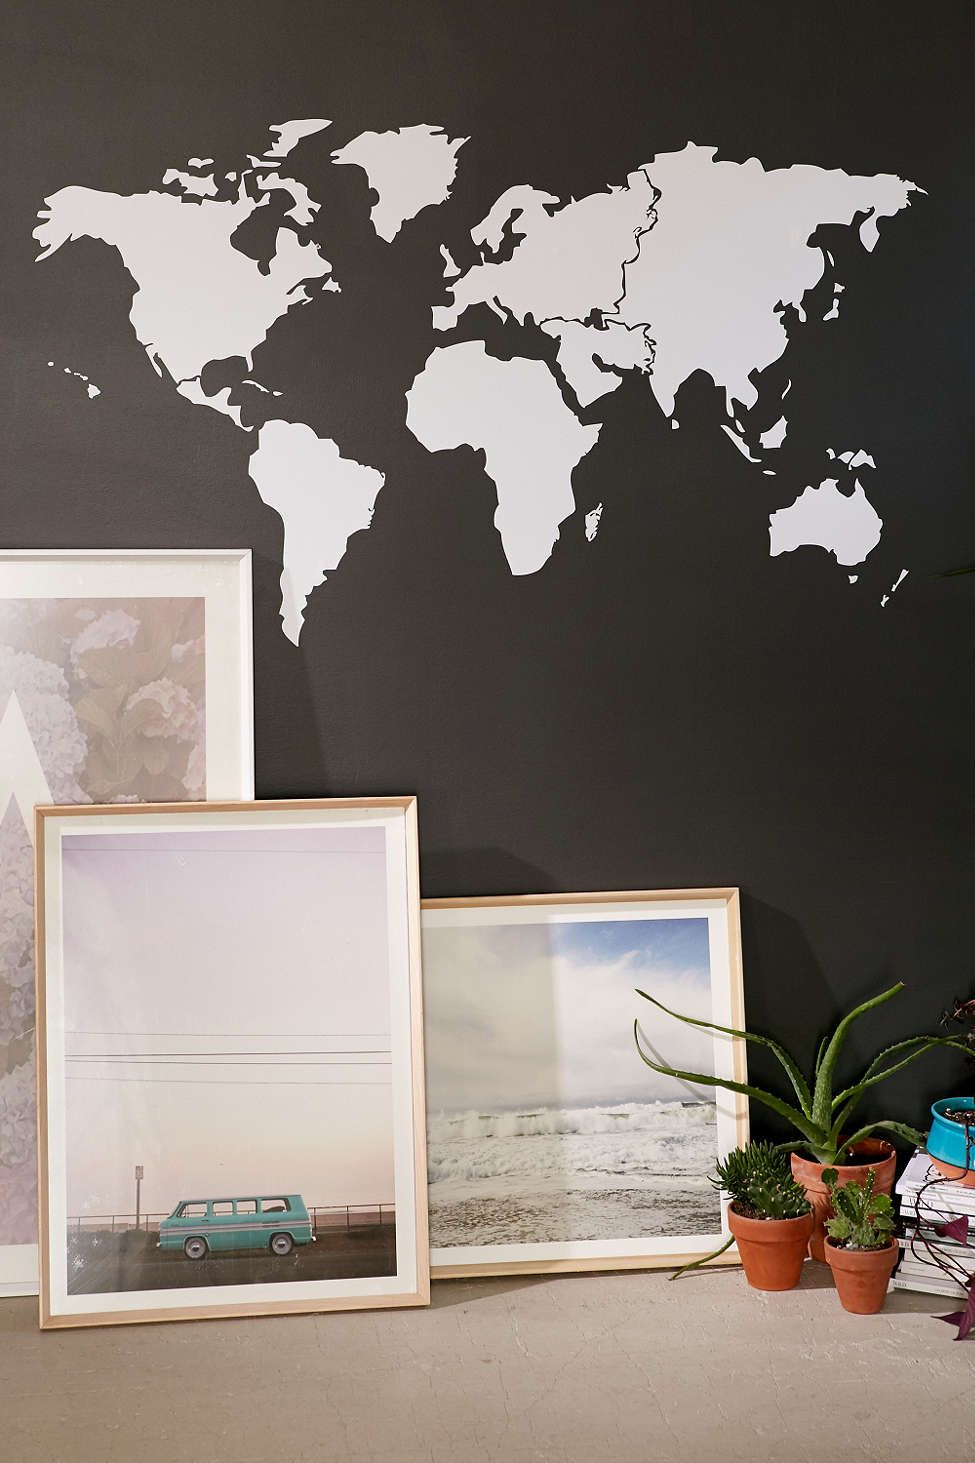 Walls need love world map wall decal ideas para la pared jornada walls need love world map wall decal gumiabroncs Images